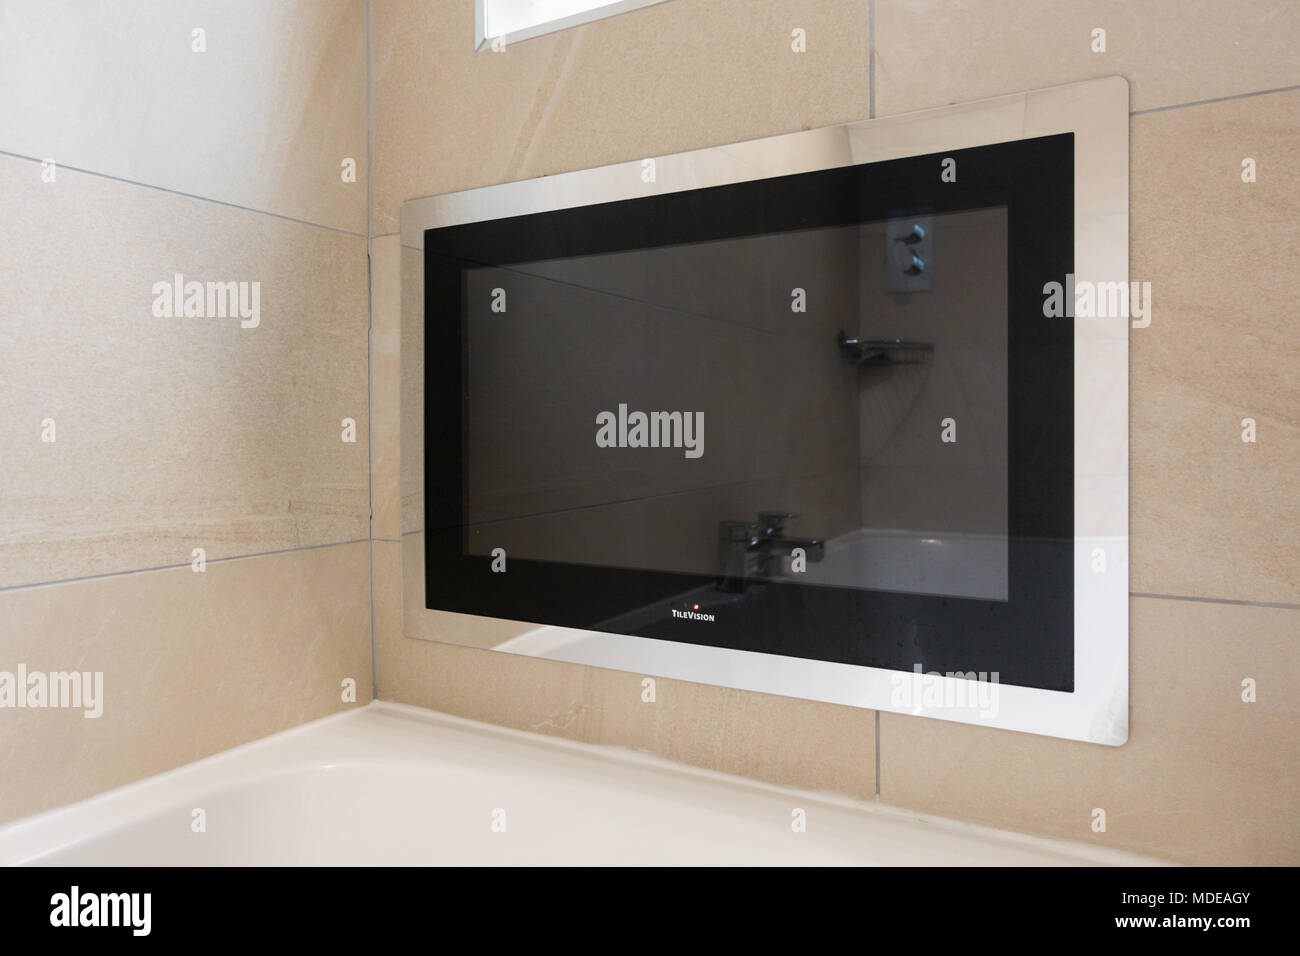 waterproof digital LCD television made by TileVision - Stock Image